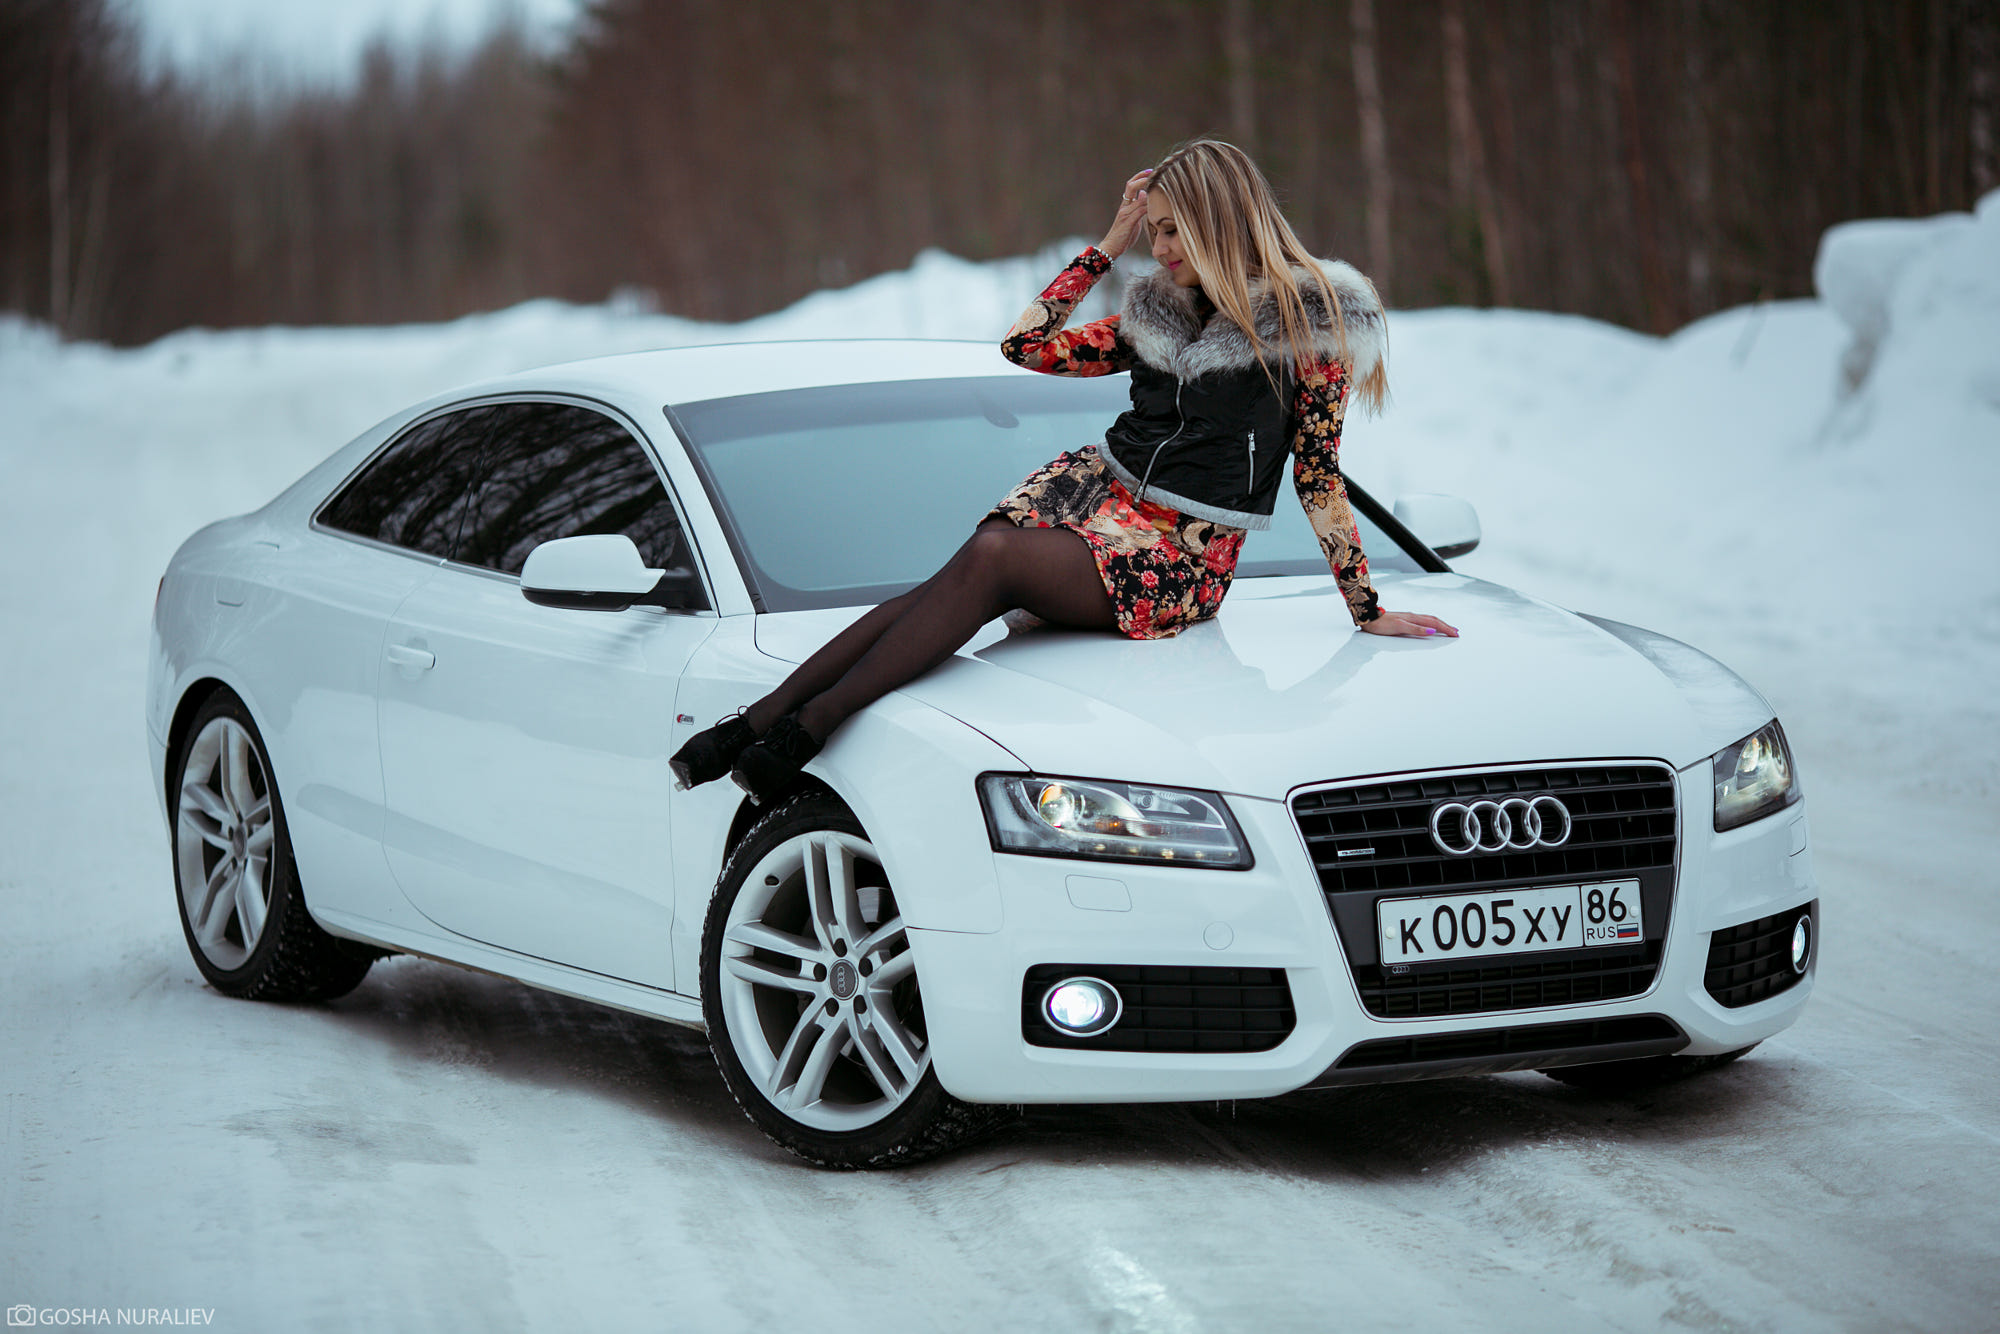 Audi A5 Coupe Model By Gosha Nuraliev moreover sivaonline additionally Bayern Munich Iphone Wallpapers besides Fondos De Pantalla Hd 3d together with Cars. on audi logo